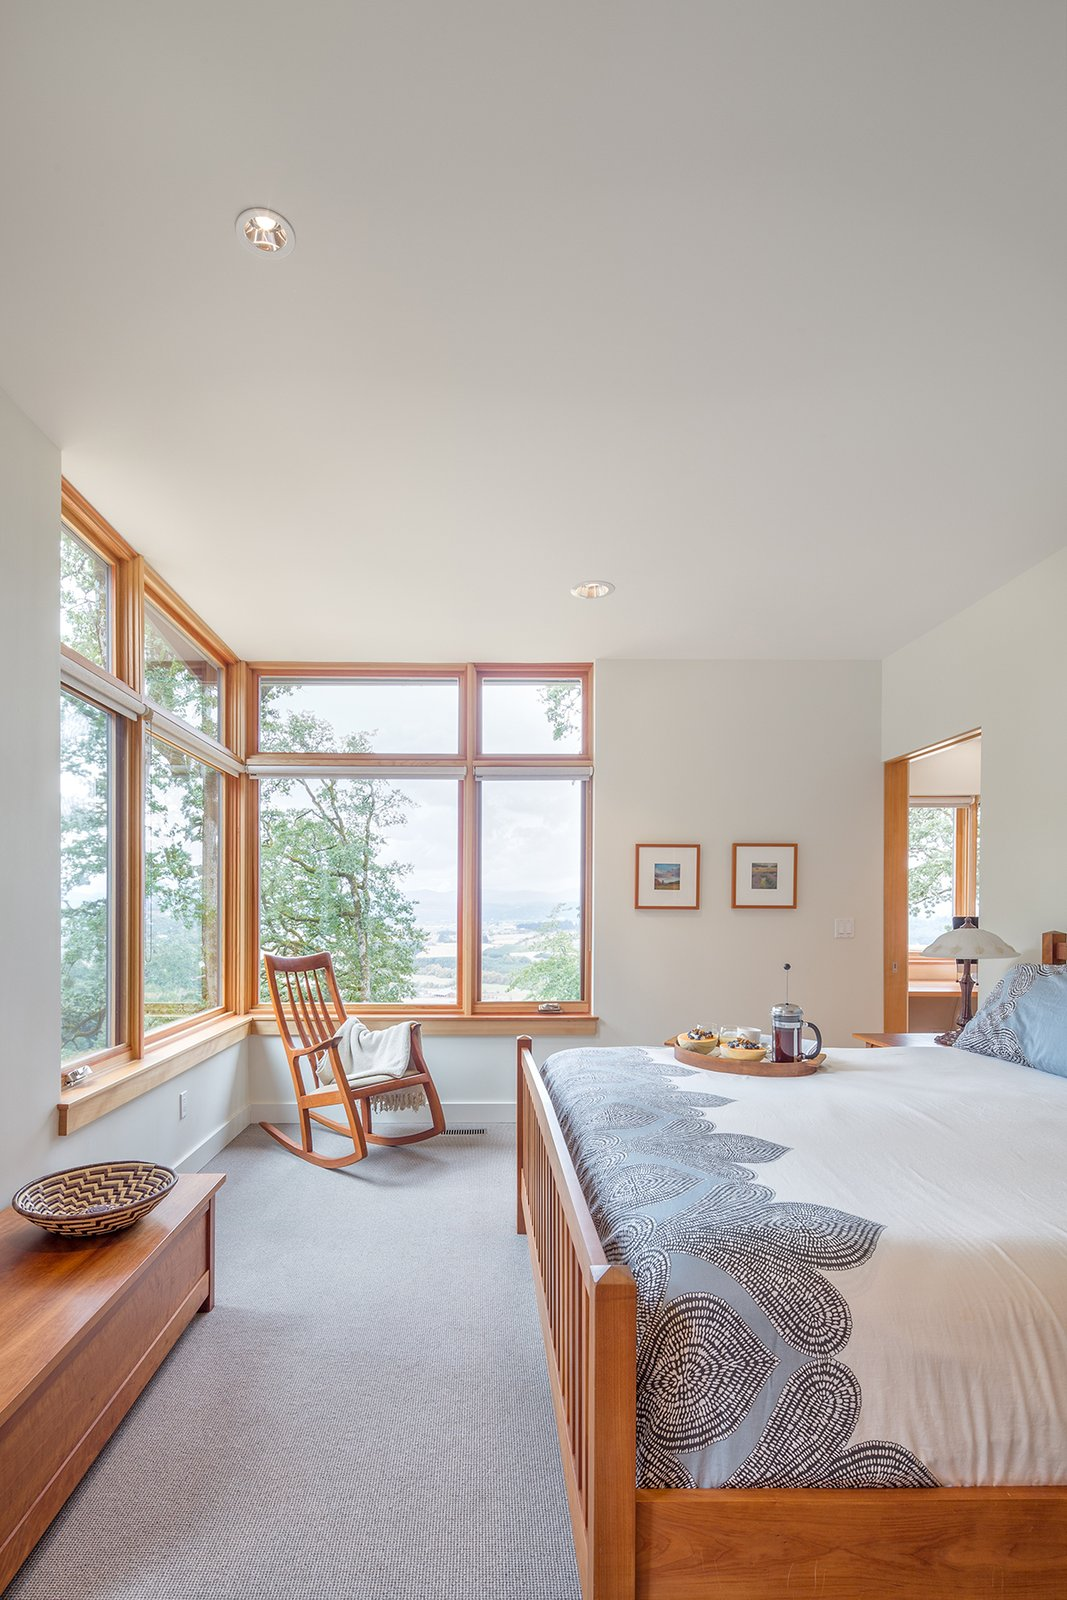 Full height corner windows in the master bedroom frame views towards the Yamhill Valley beyond.  Sunset Knoll House by Richard Brown Architect